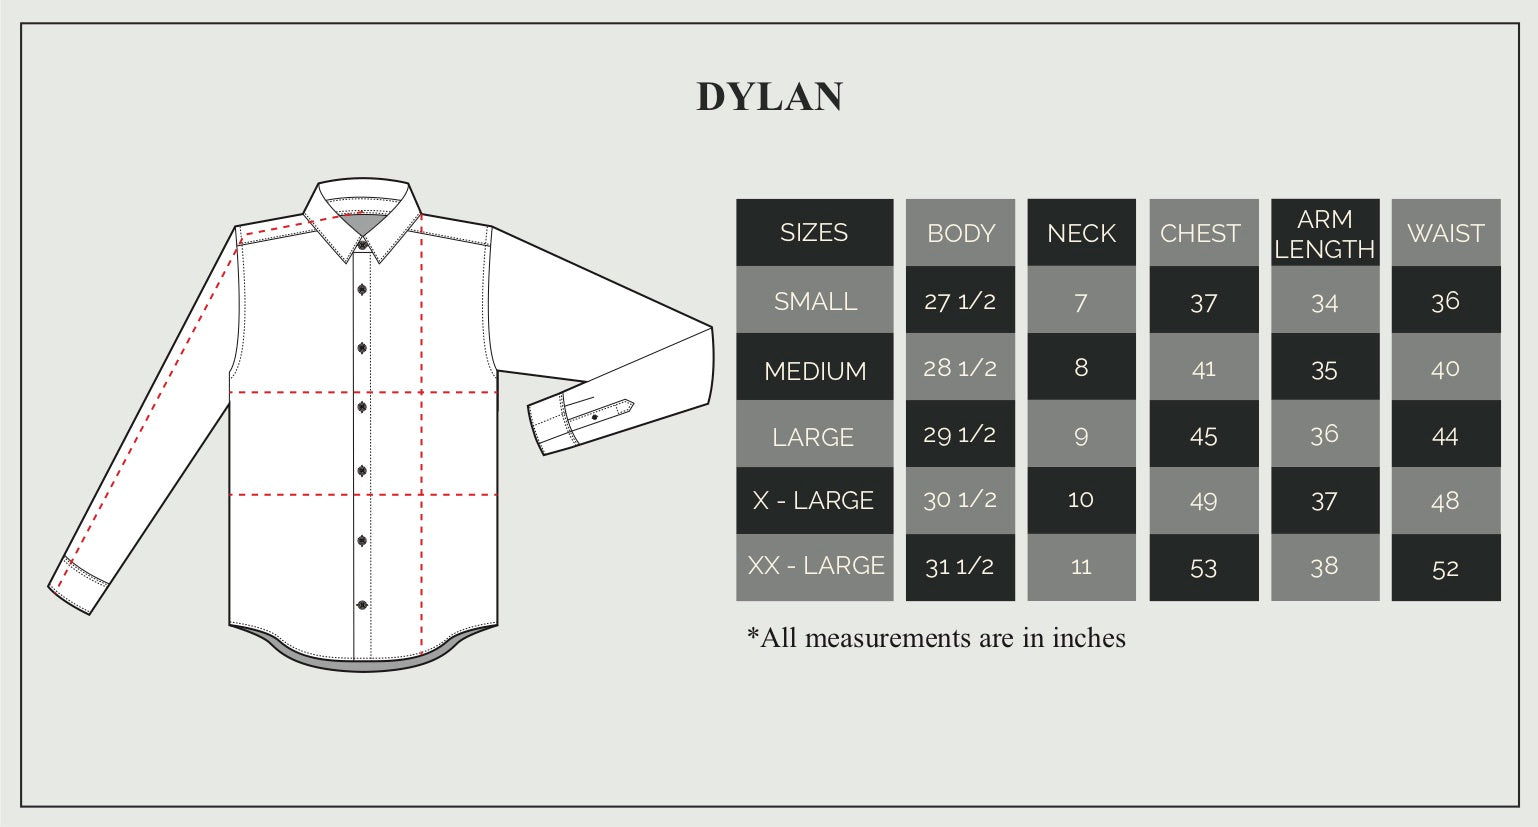 Short Sleeve Dylan Size Guide